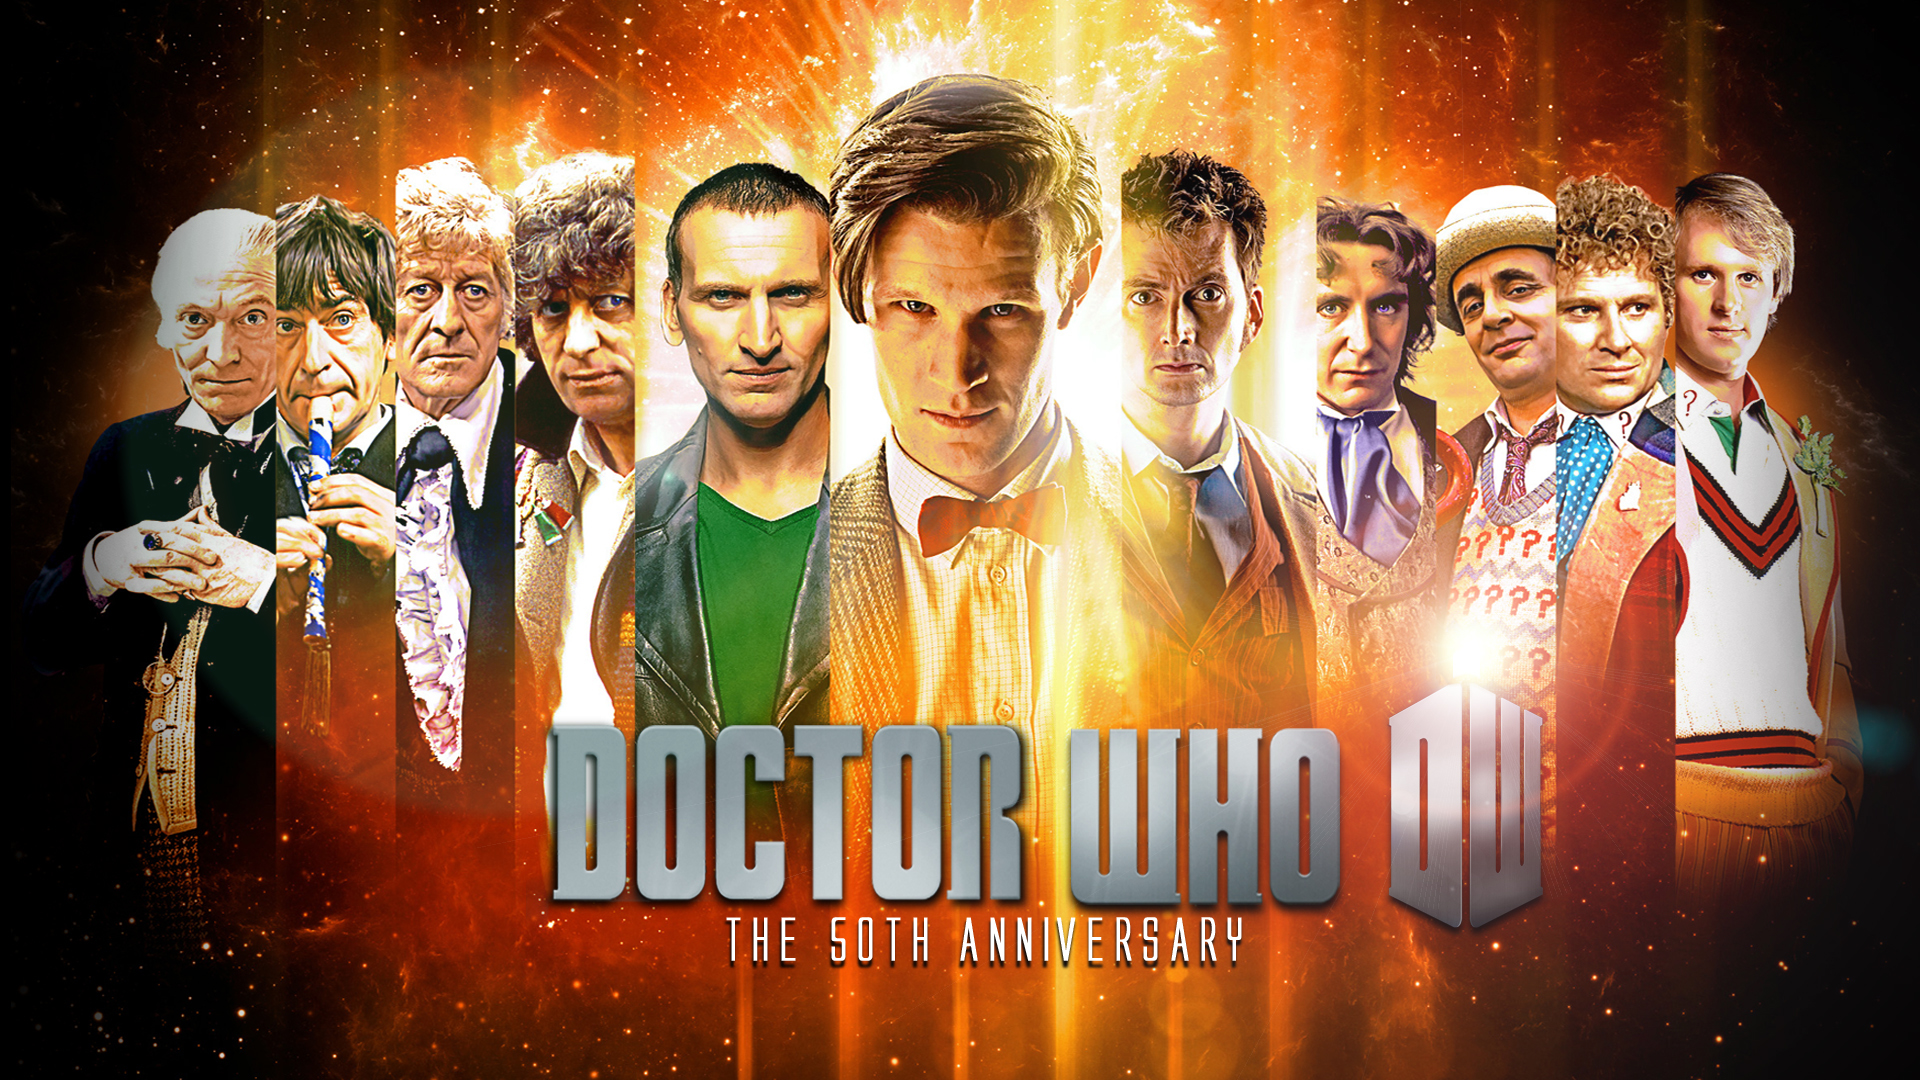 Doctor Who 11 Doctors 2289118 Hd Wallpaper Backgrounds Download